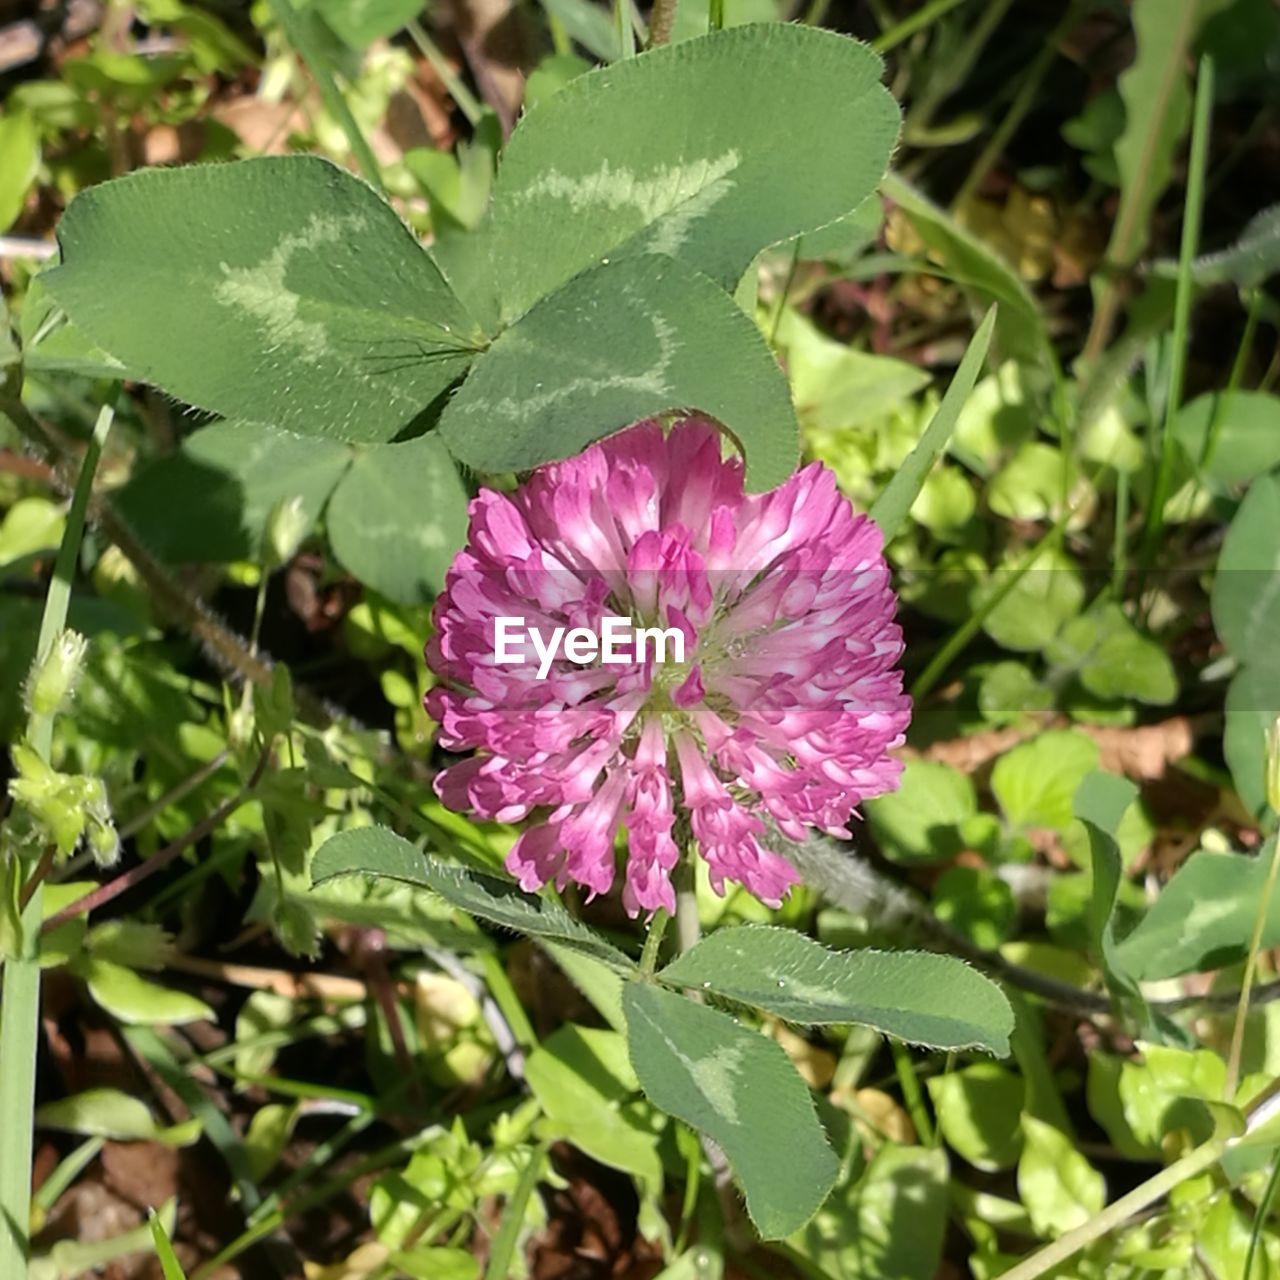 leaf, growth, nature, plant, flower, fragility, green color, beauty in nature, day, freshness, petal, sunlight, outdoors, purple, no people, pink color, flower head, close-up, blooming, water, periwinkle